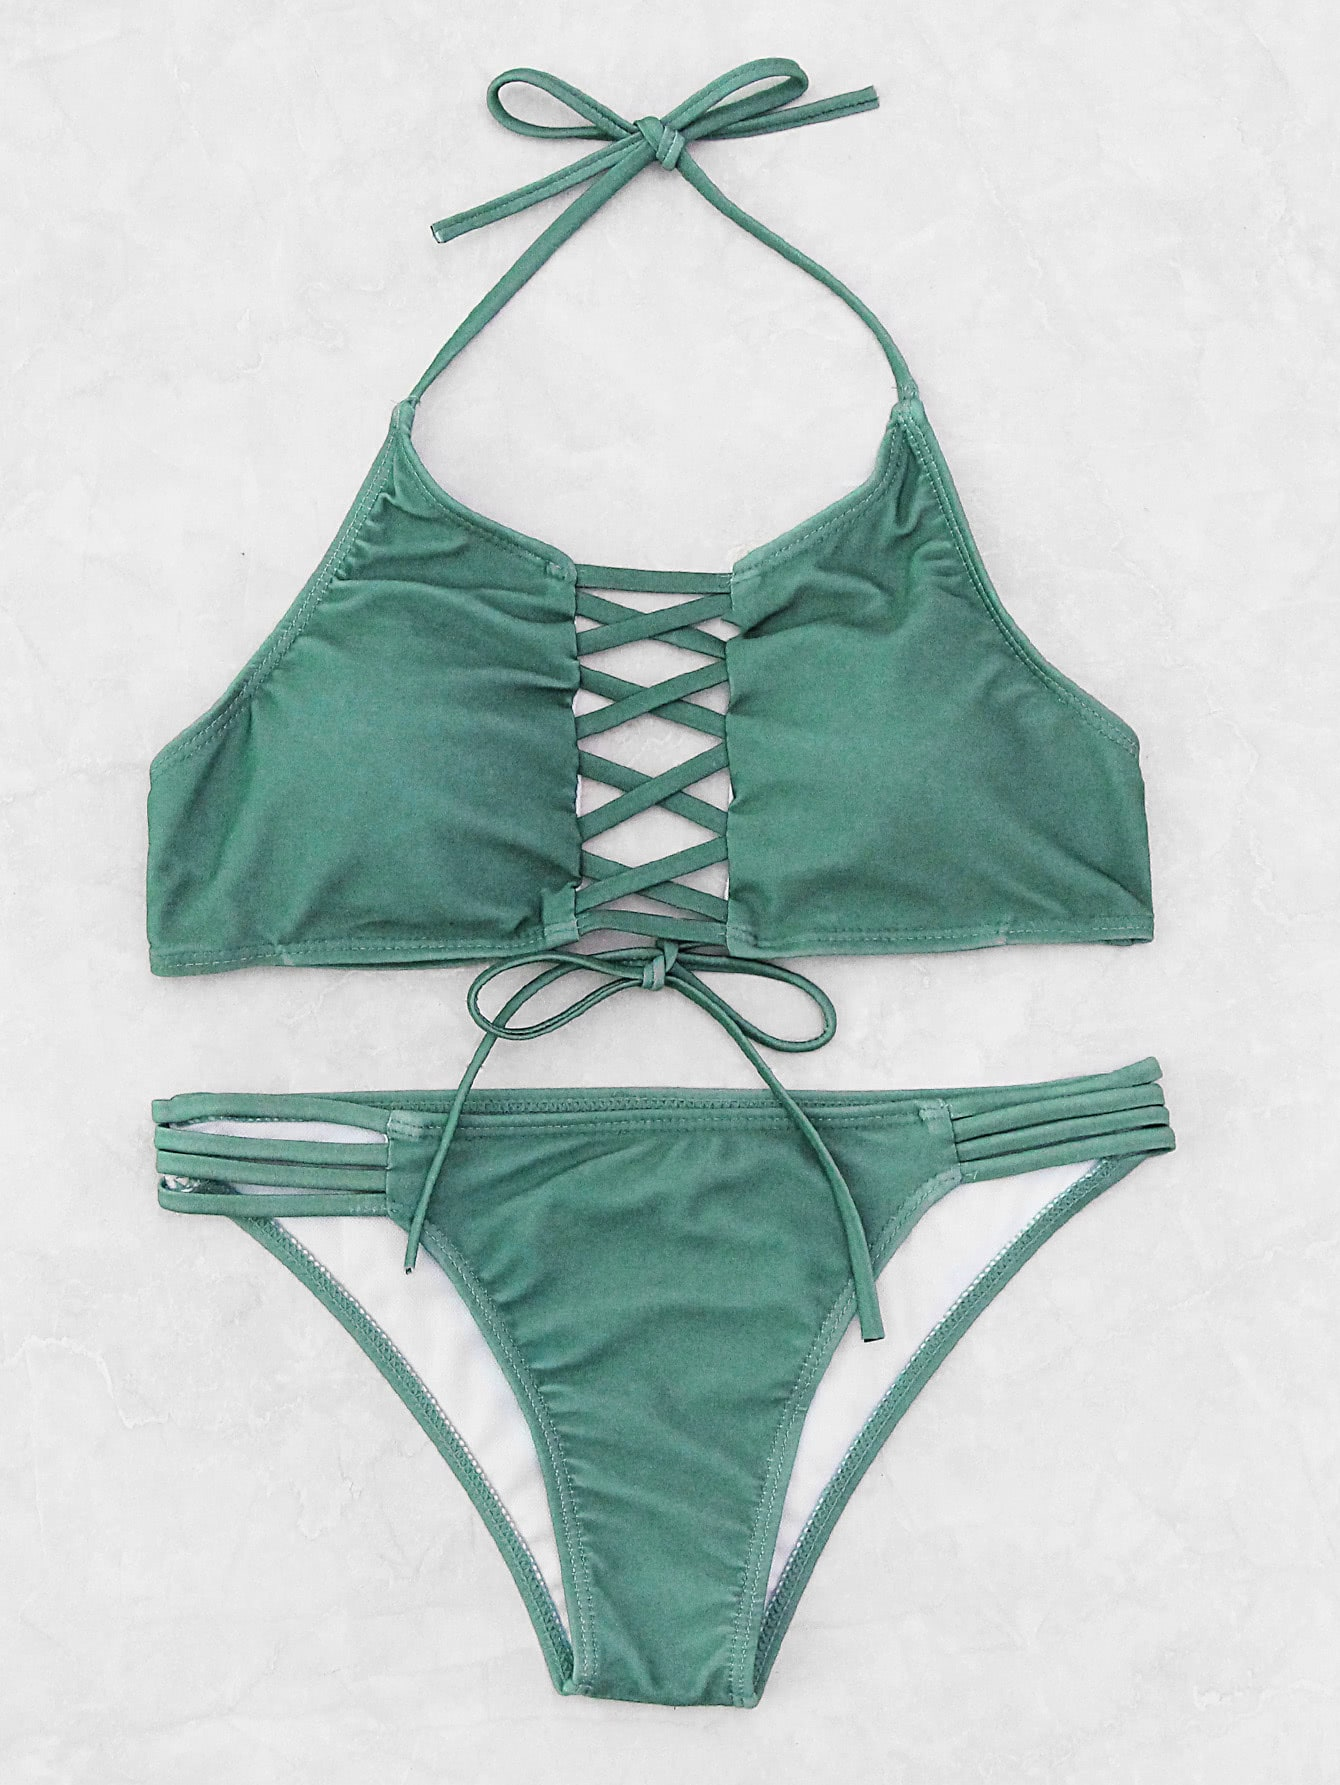 Criss Cross Ladder Cutout Halter Bikini Set swimwear170630313